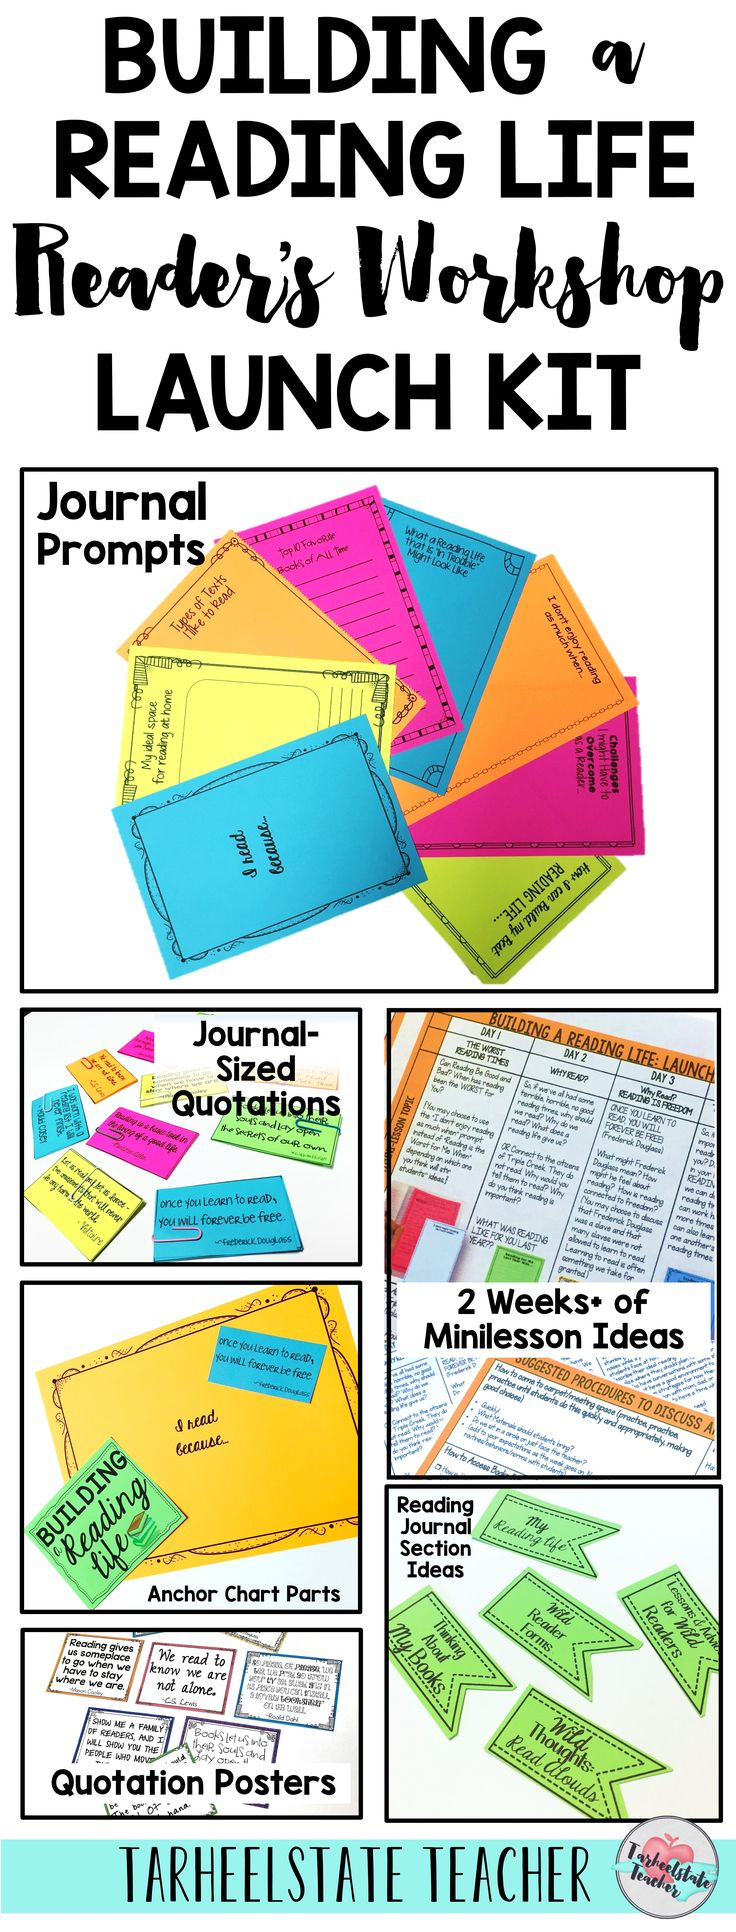 "Instill a love of reading from the beginning of the year as you launch readers workshop with these readers' notebook journal prompts, quotation posters, anchor chart parts, and mini lesson ideas for a workshop unit inspired by Lucy Calkins' concept of ""Building a Reading Life."" Student journal/reading prompts, anchor chart parts, reading quotations and posters, and minilesson ideas for your first two weeks of school. Check out this reader's workshop kit that is perfect for 3rd, 4th, 5th…"